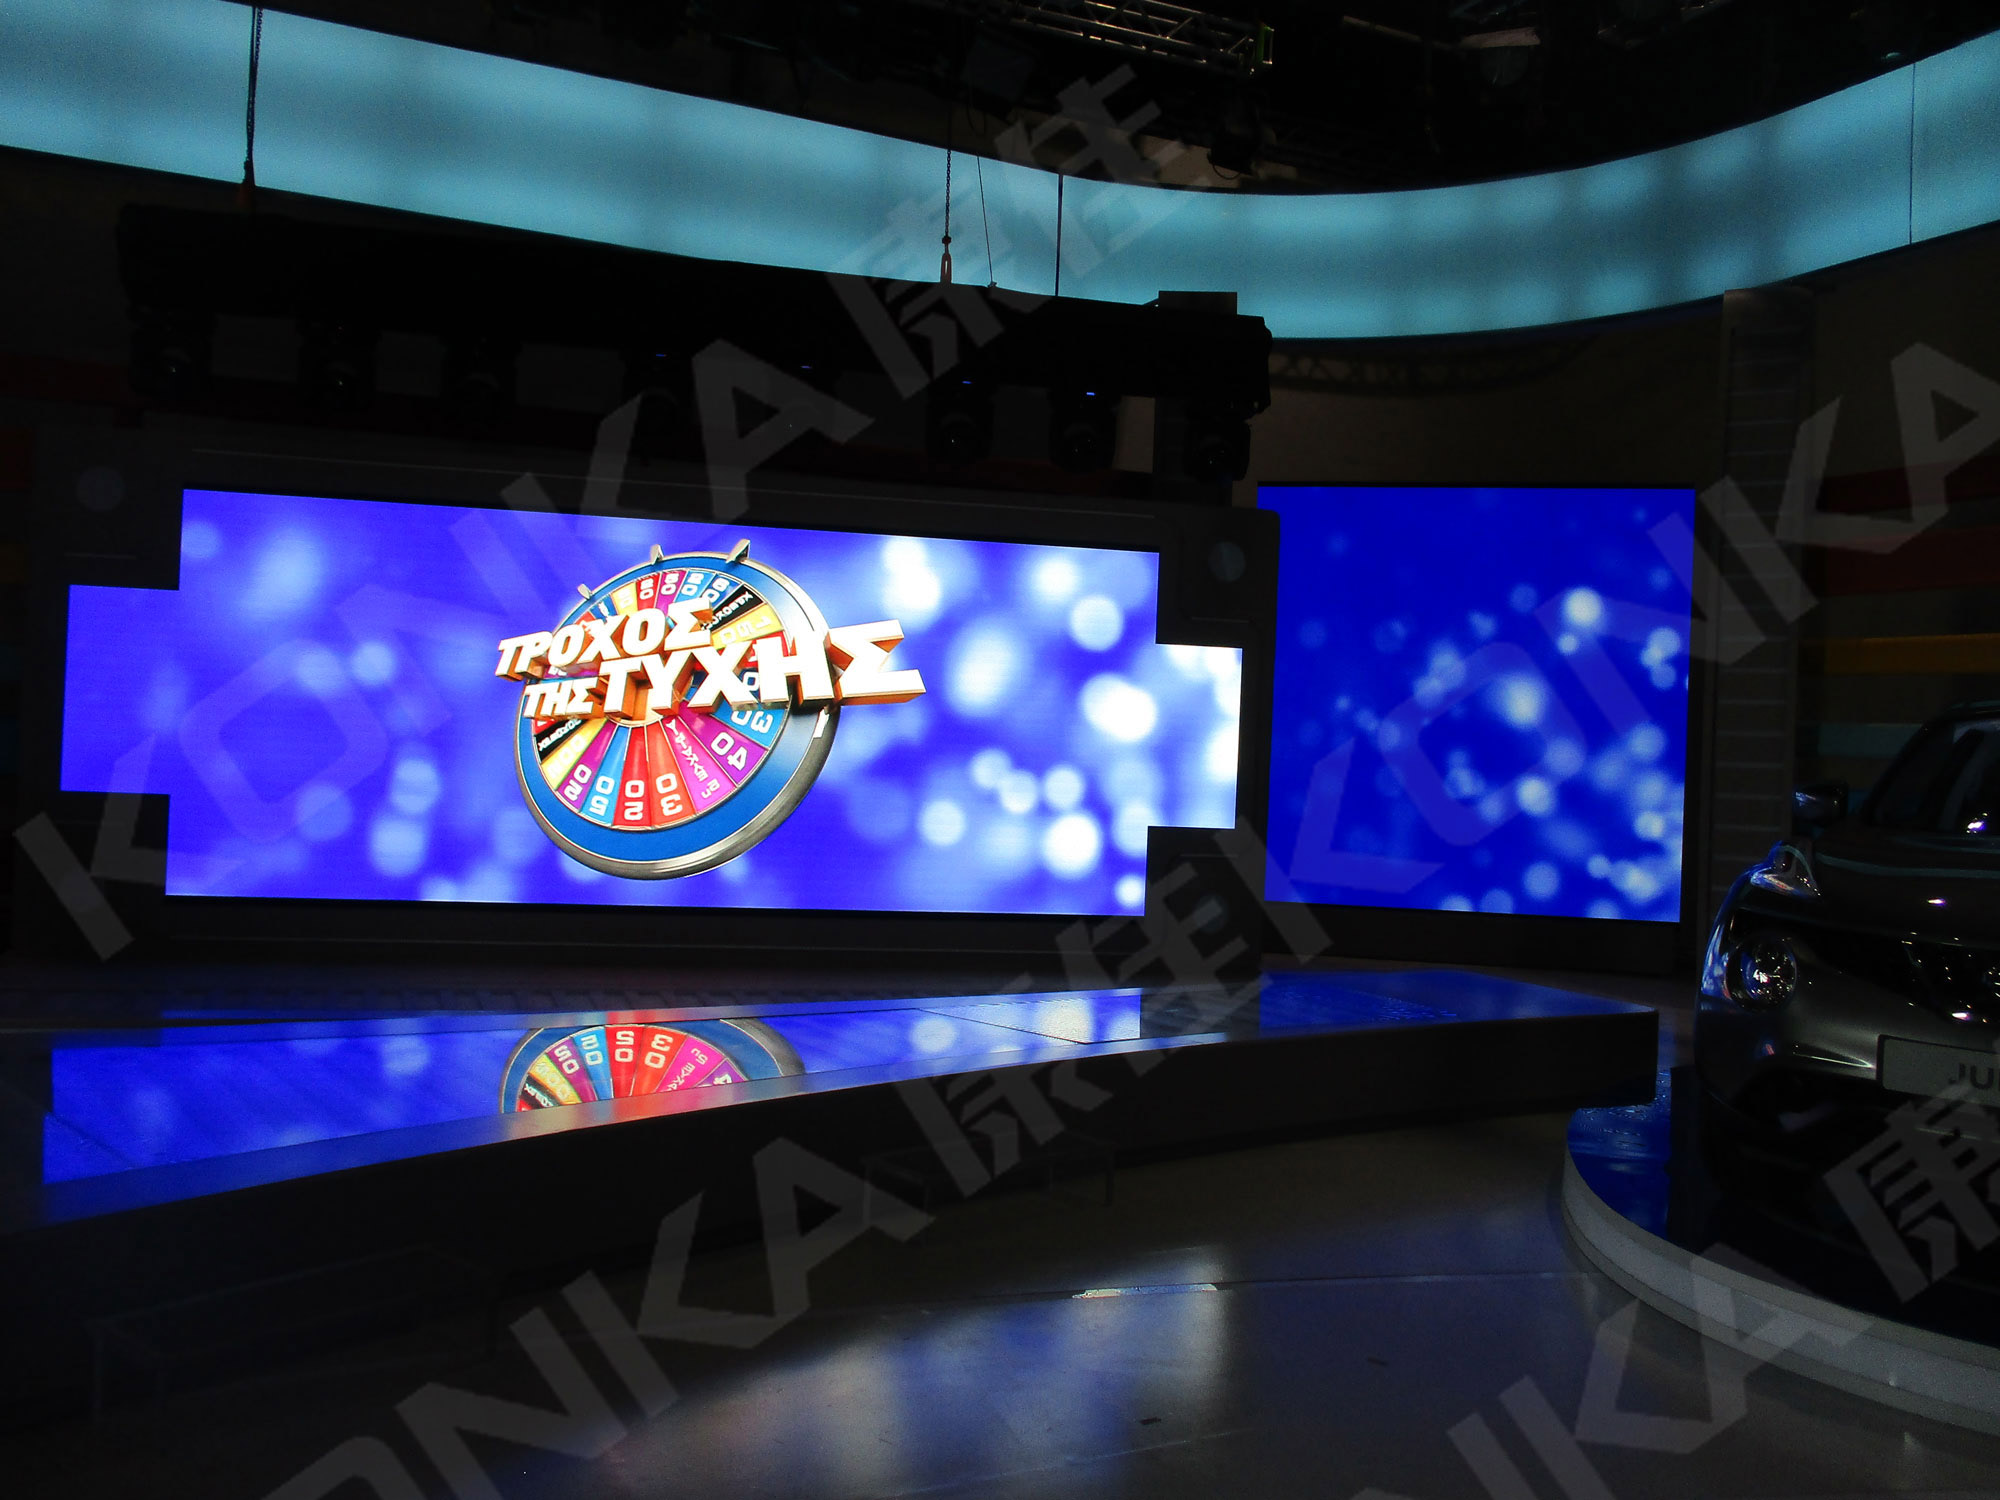 "<span style=""font-size:13.3333px;"">Greece TV studio LED P4</span>"